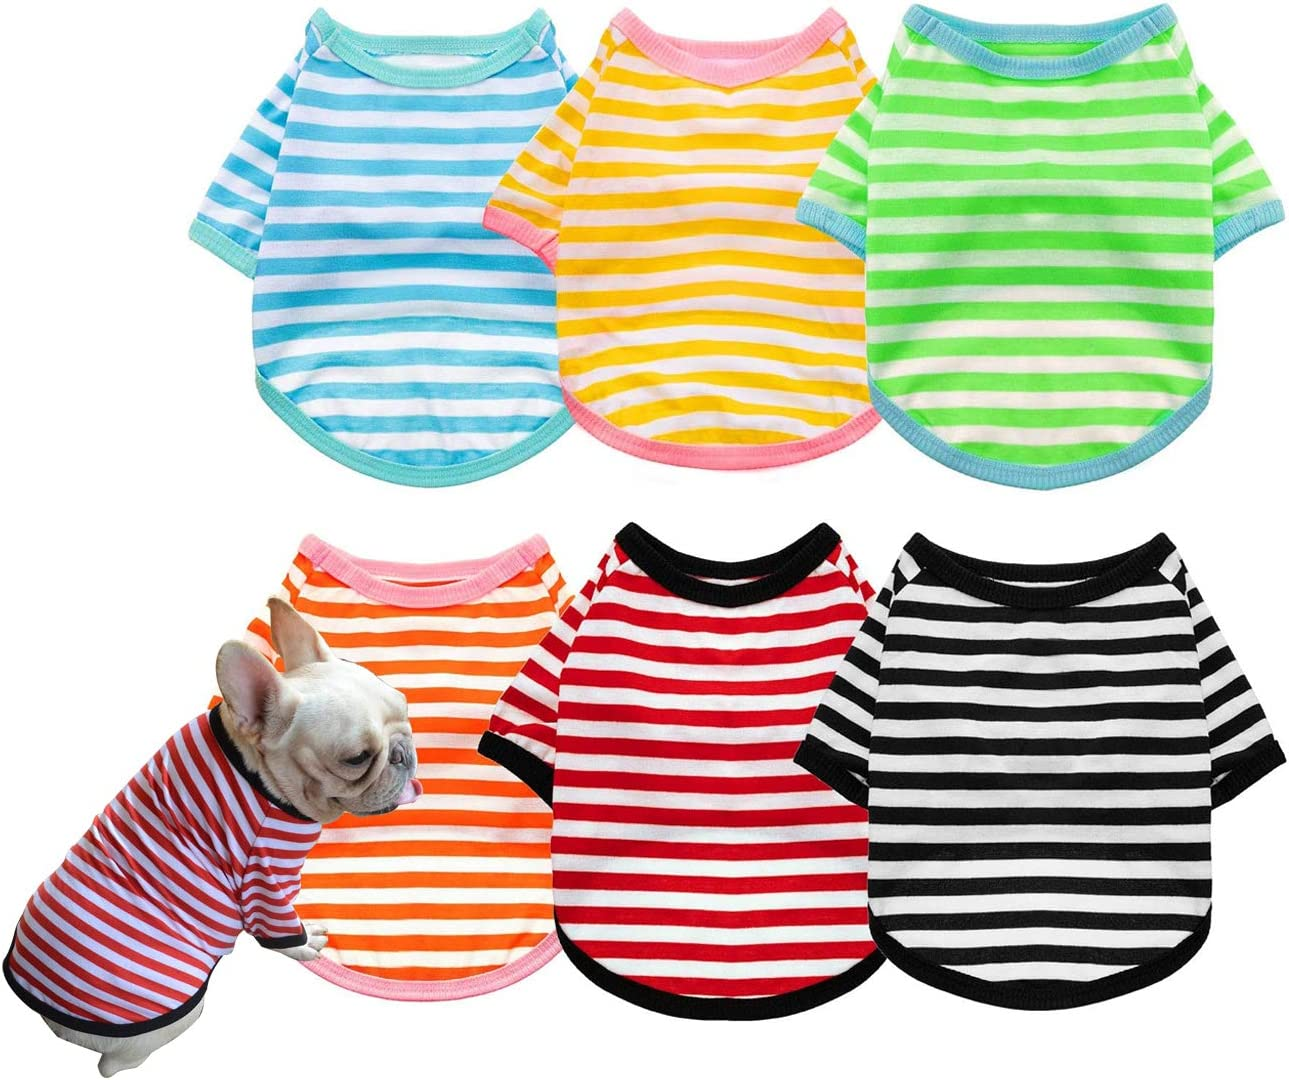 Now on sale UNGGOY Dog Shirts Pet Clothes Striped Ves 2 Clothing Puppy Pack Genuine Free Shipping